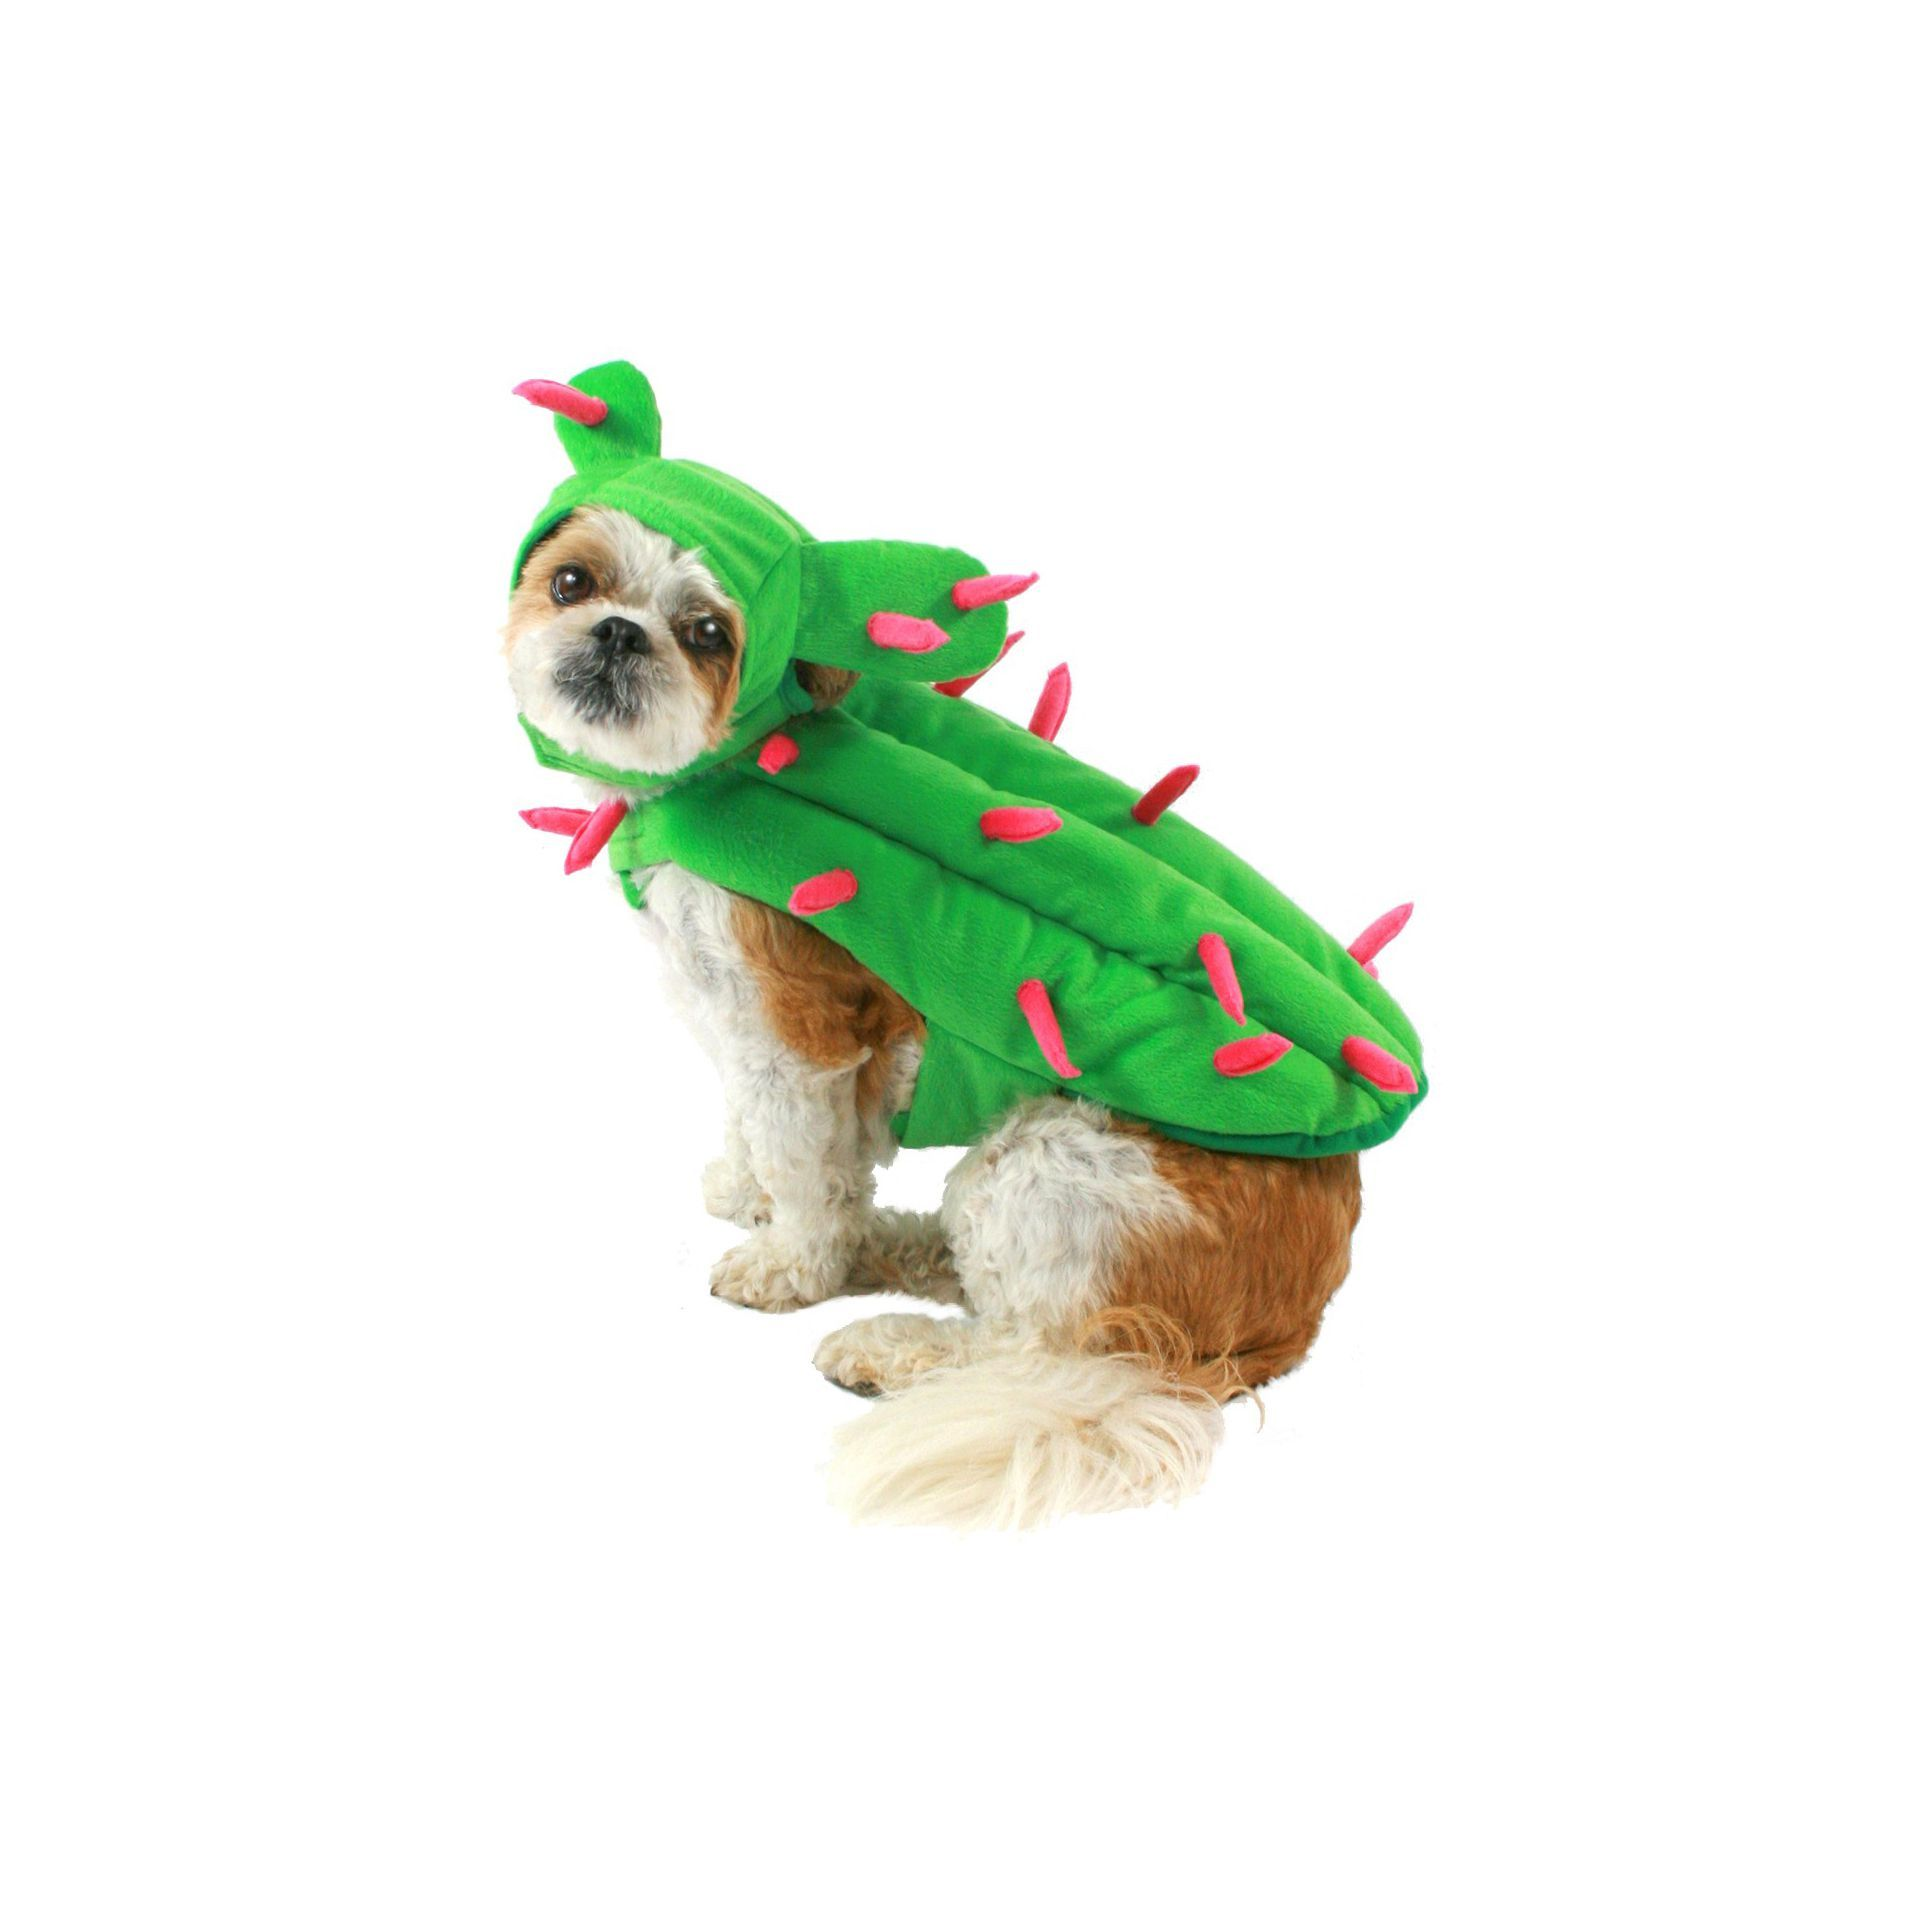 acc908795d4 35 Funny Dog Halloween Costumes - Cute Ideas for Pet Costumes